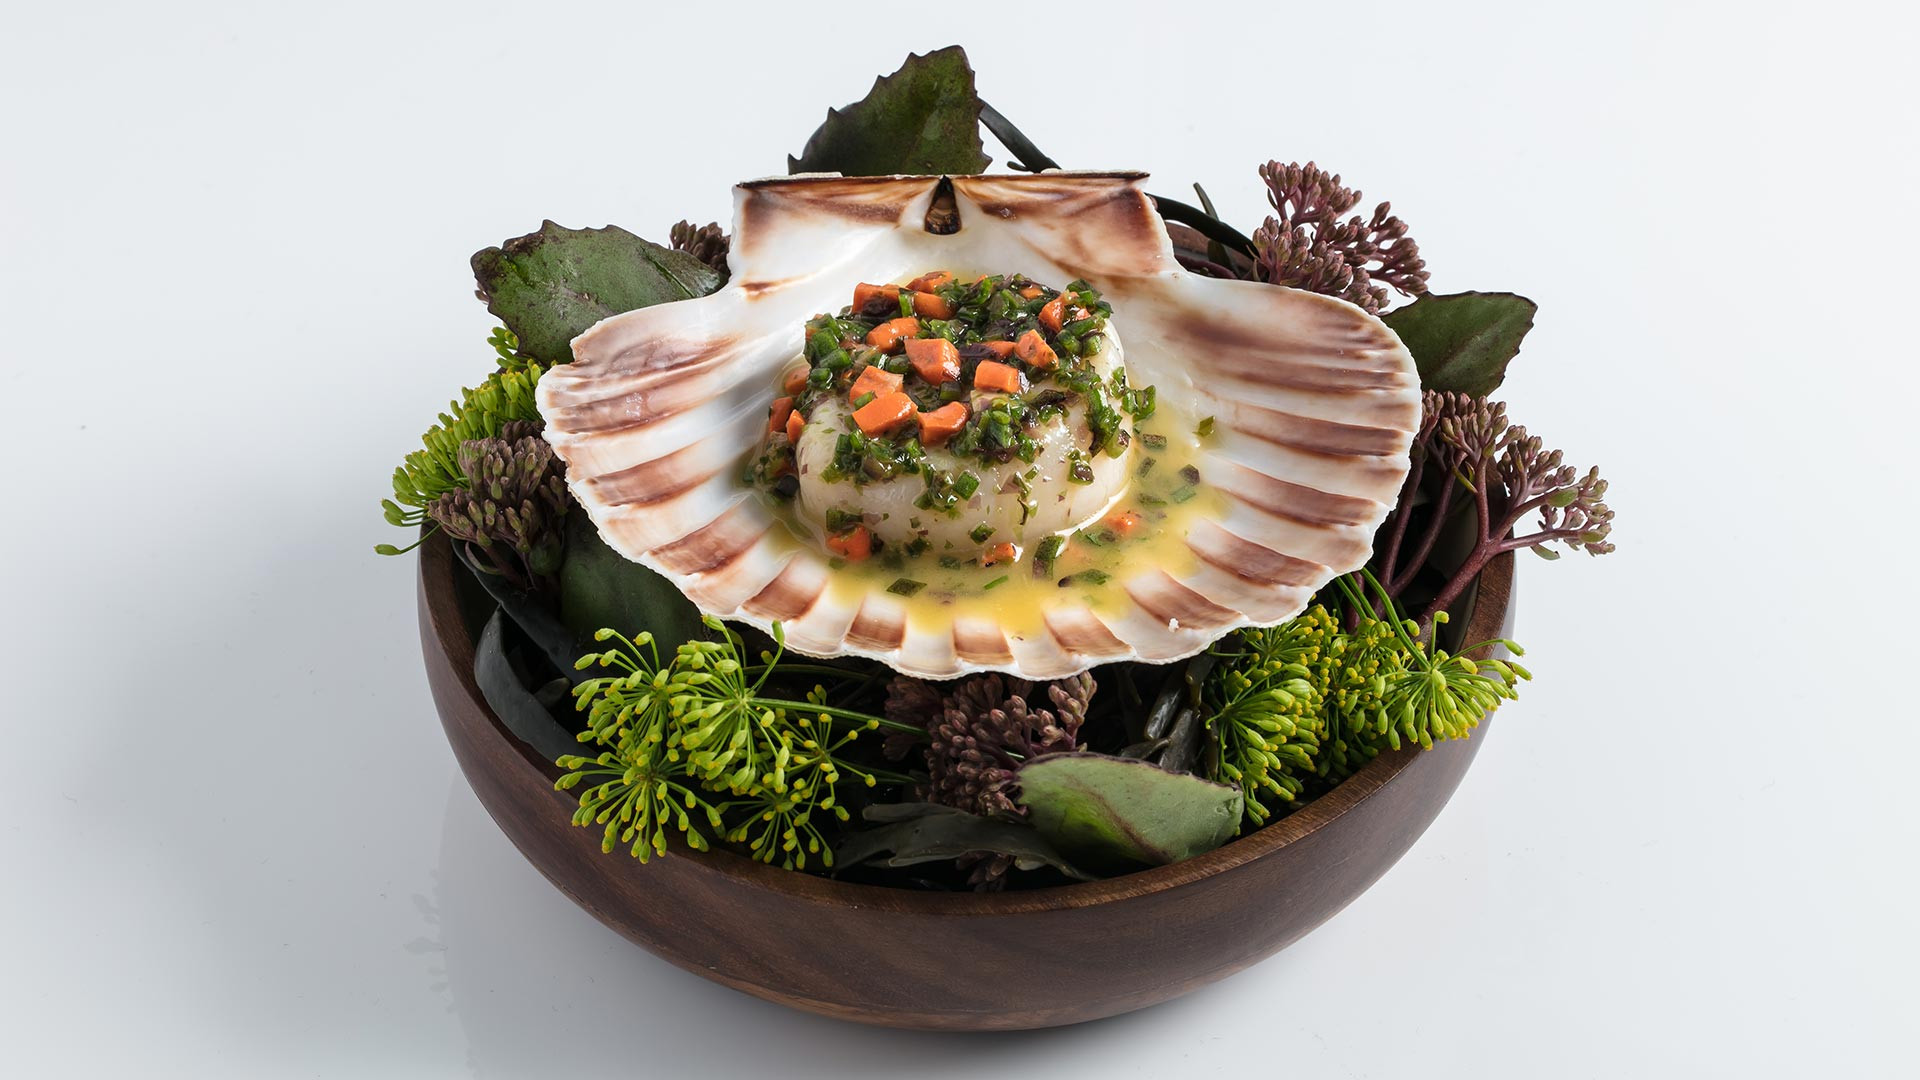 Isle of Mull scallop cooked over wood